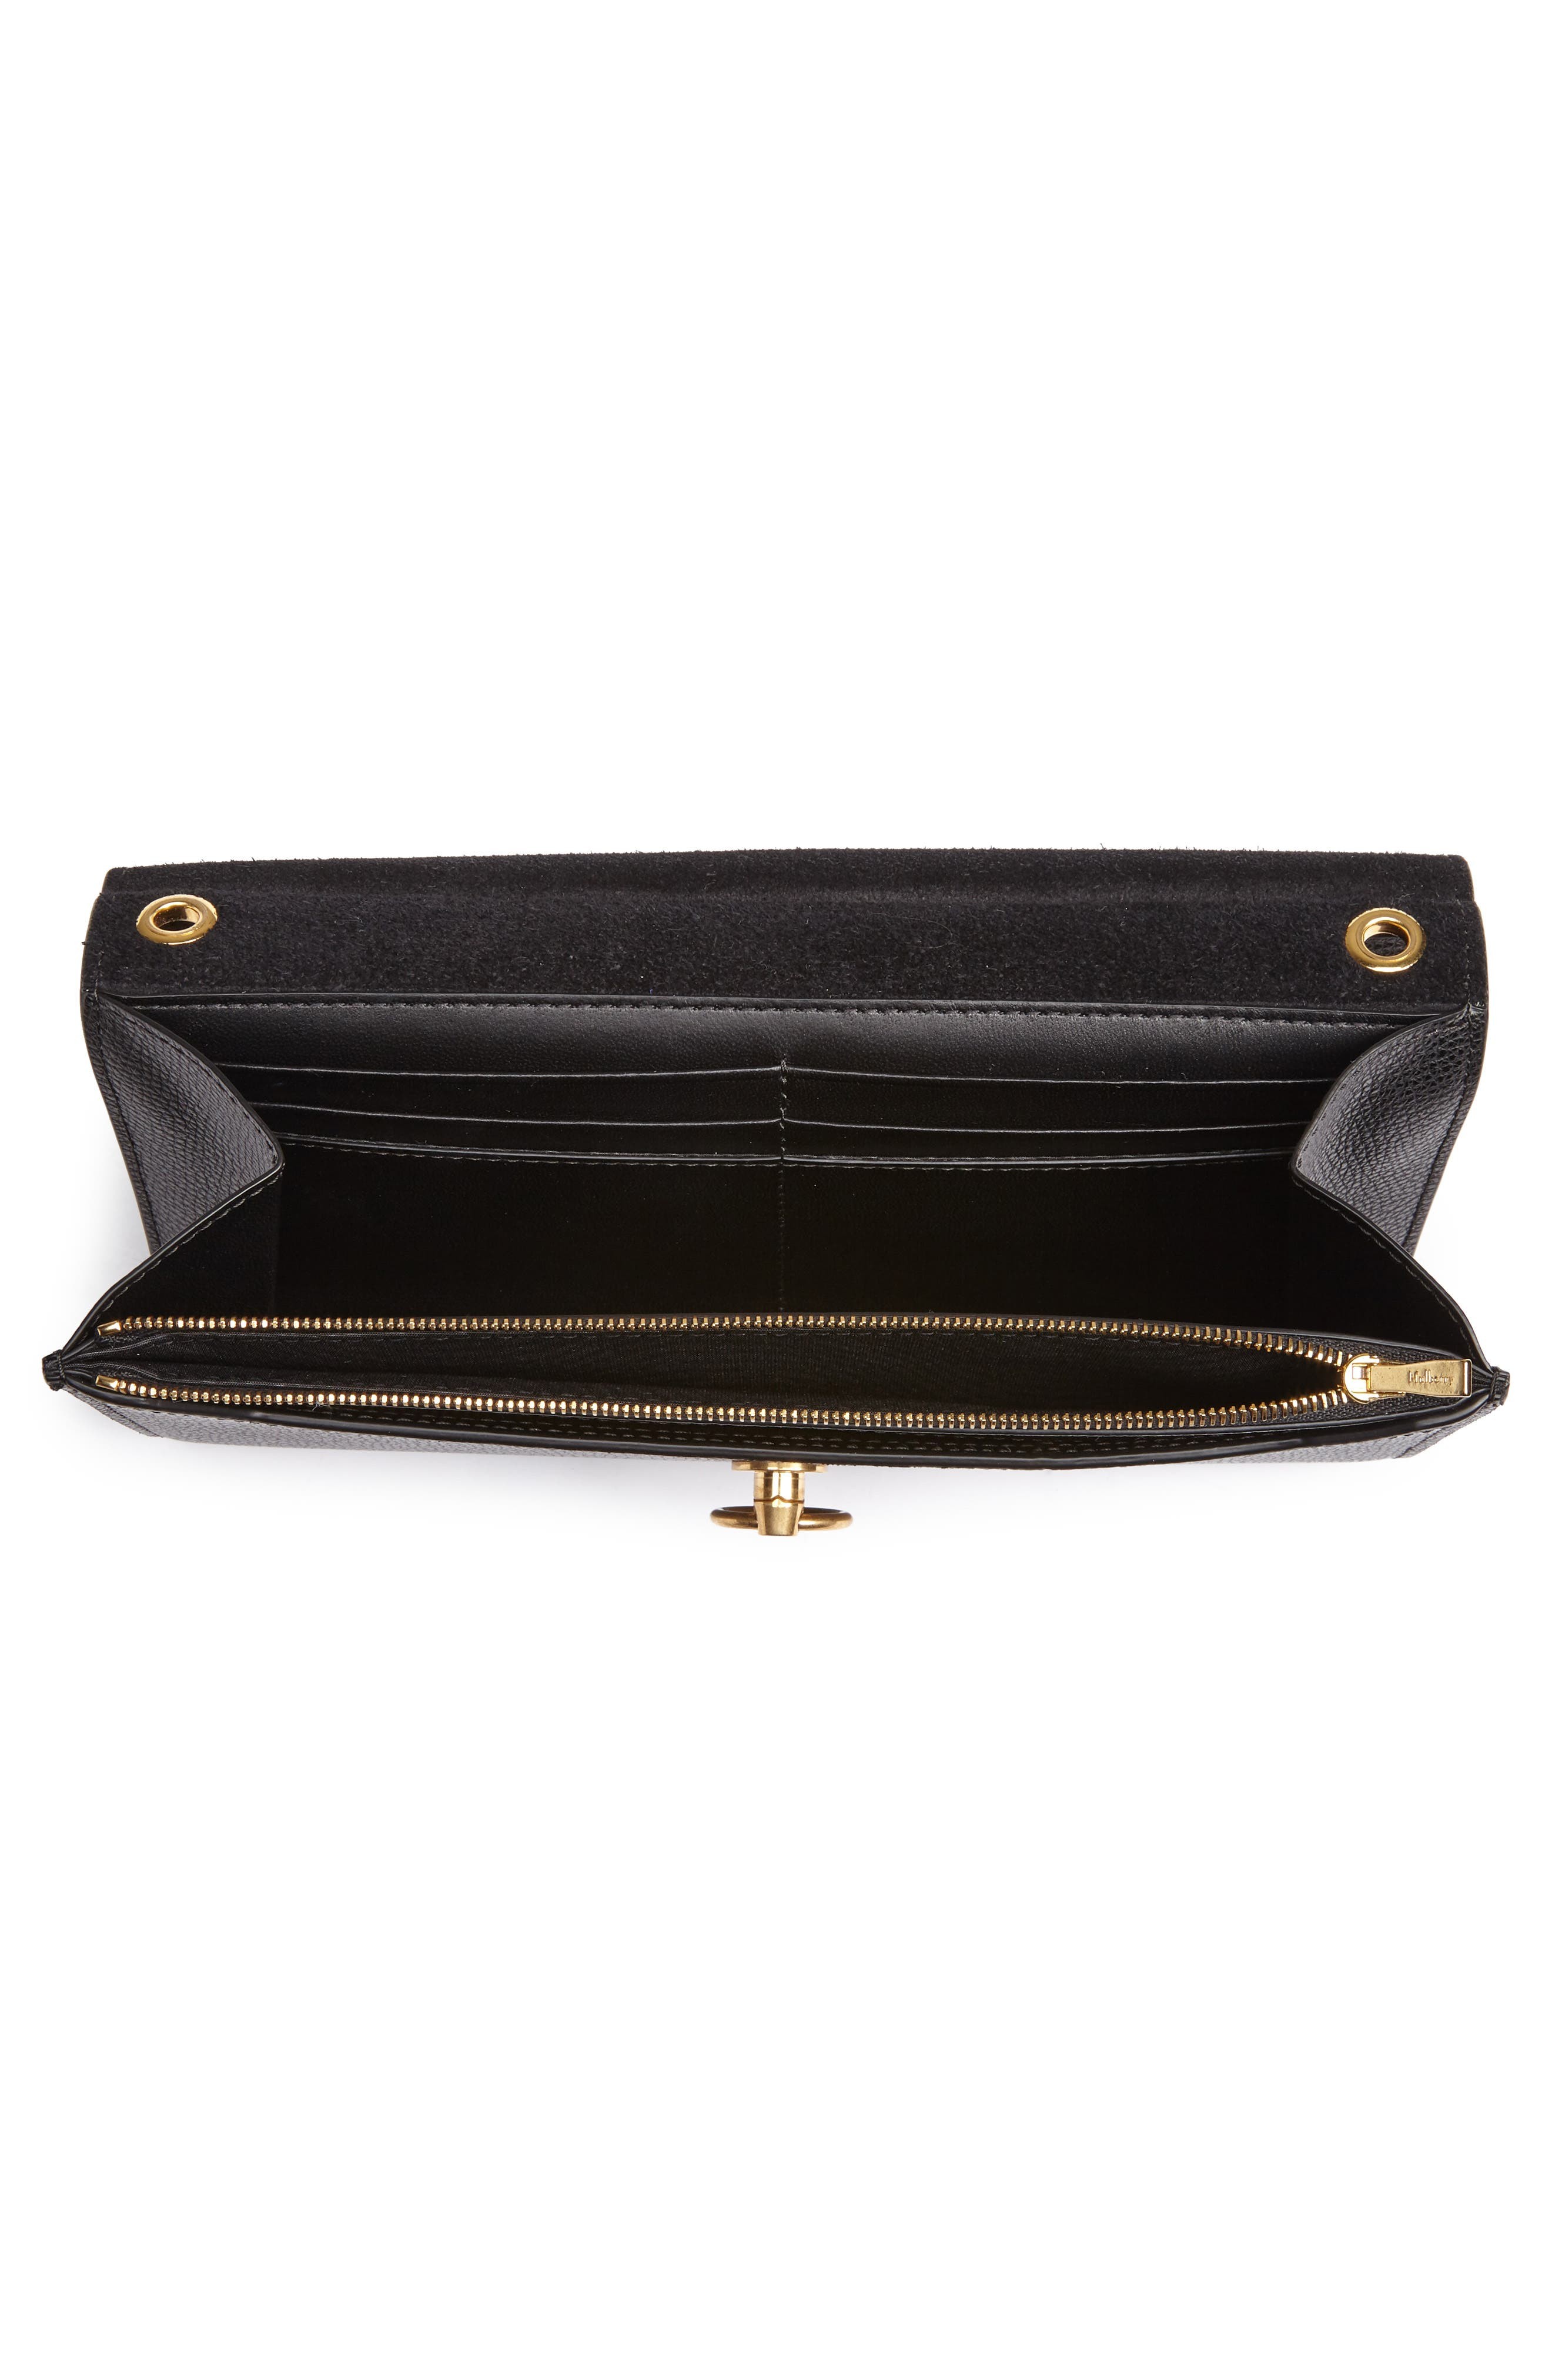 Amberley Calfskin Leather Clutch,                             Alternate thumbnail 4, color,                             Black